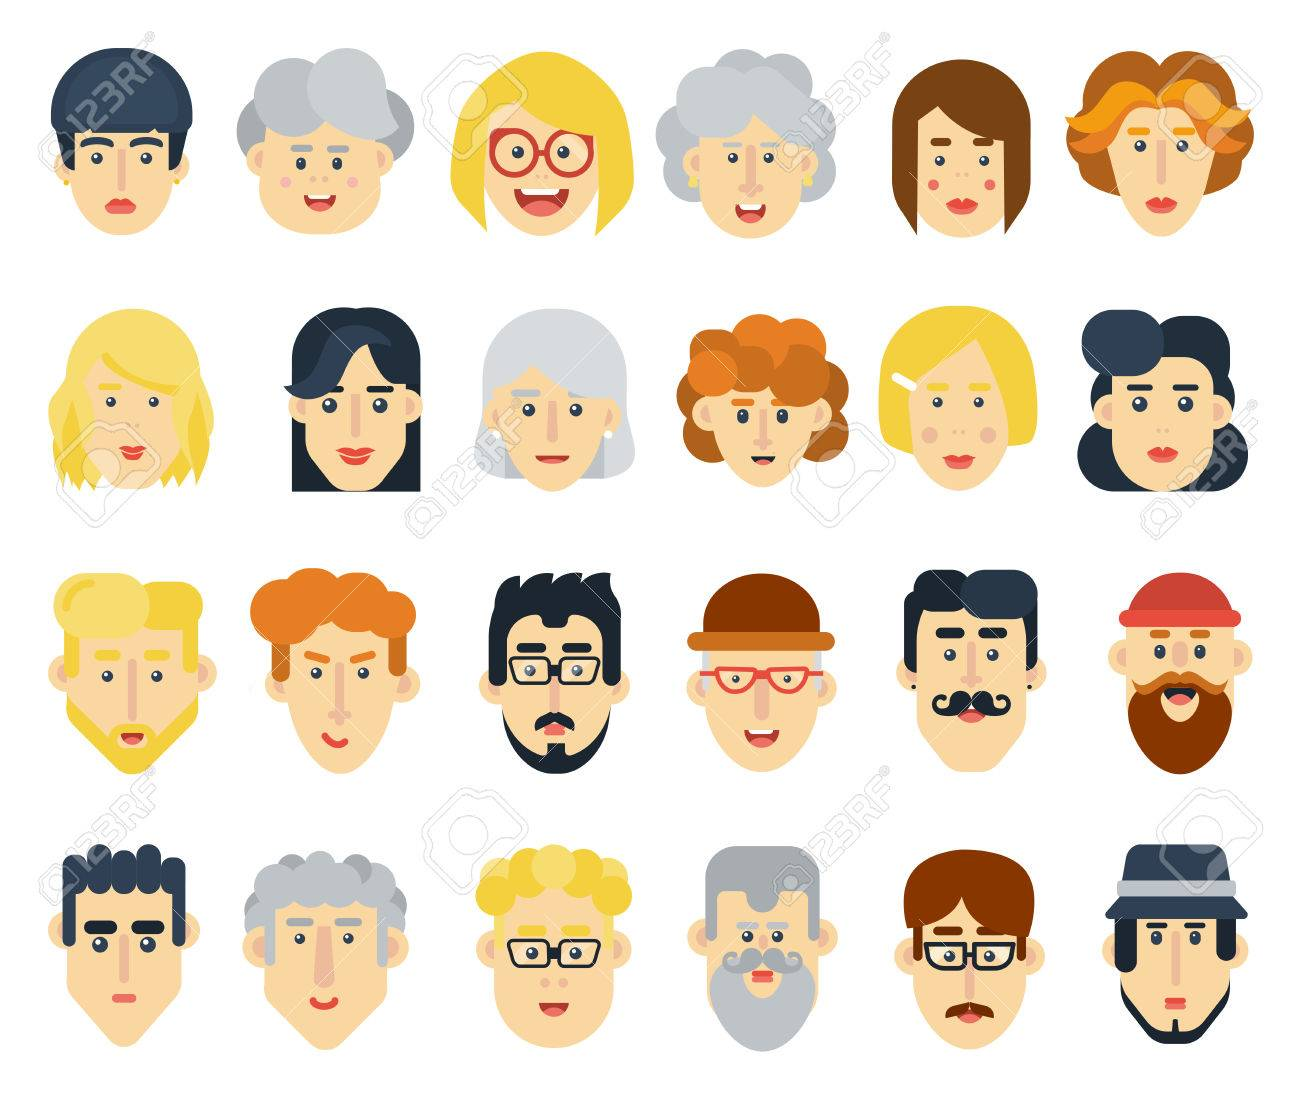 Funny flat avatars icons set positive male and female characters vector illustration stock